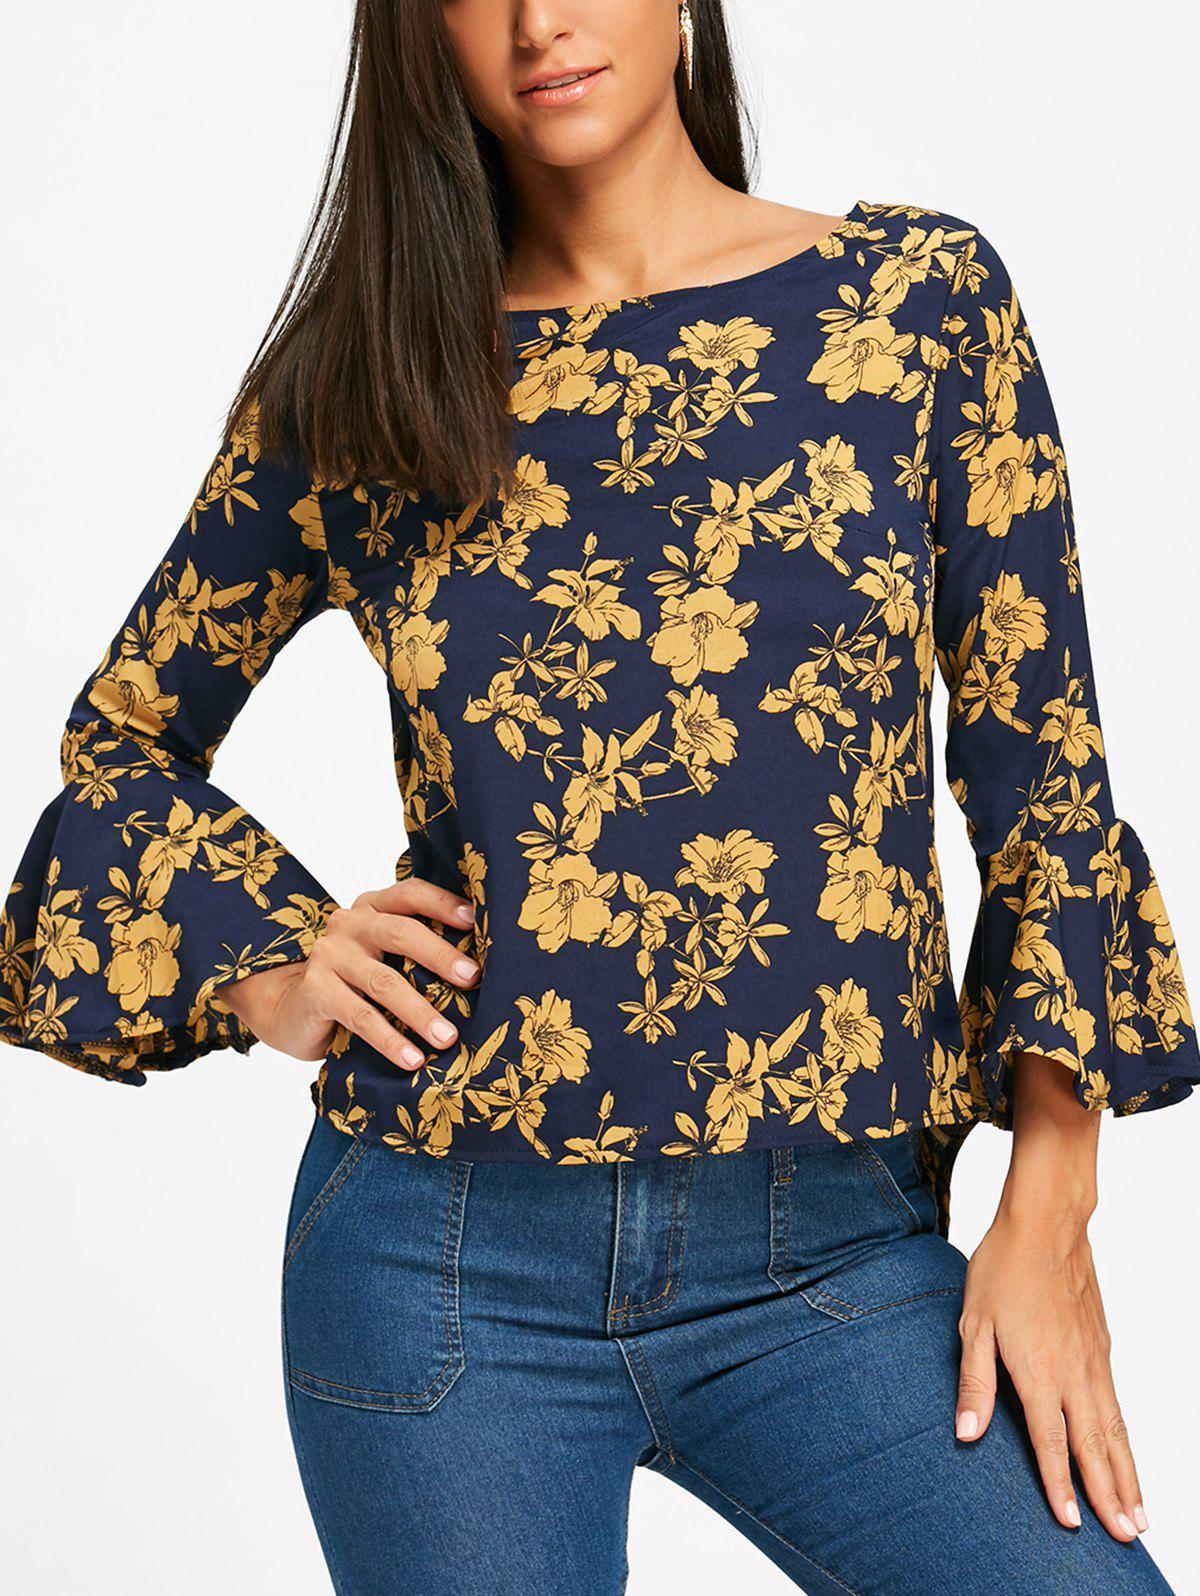 Flare Sleeve High Low Floral BlouseWOMEN<br><br>Size: M; Color: BLUE; Style: Fashion; Material: Polyester; Shirt Length: Regular; Sleeve Length: Three Quarter; Sleeve Type: Flare Sleeve; Collar: Boat Neck; Pattern Type: Floral; Season: Fall,Spring; Weight: 0.1800kg; Package Contents: 1 x Blouse;